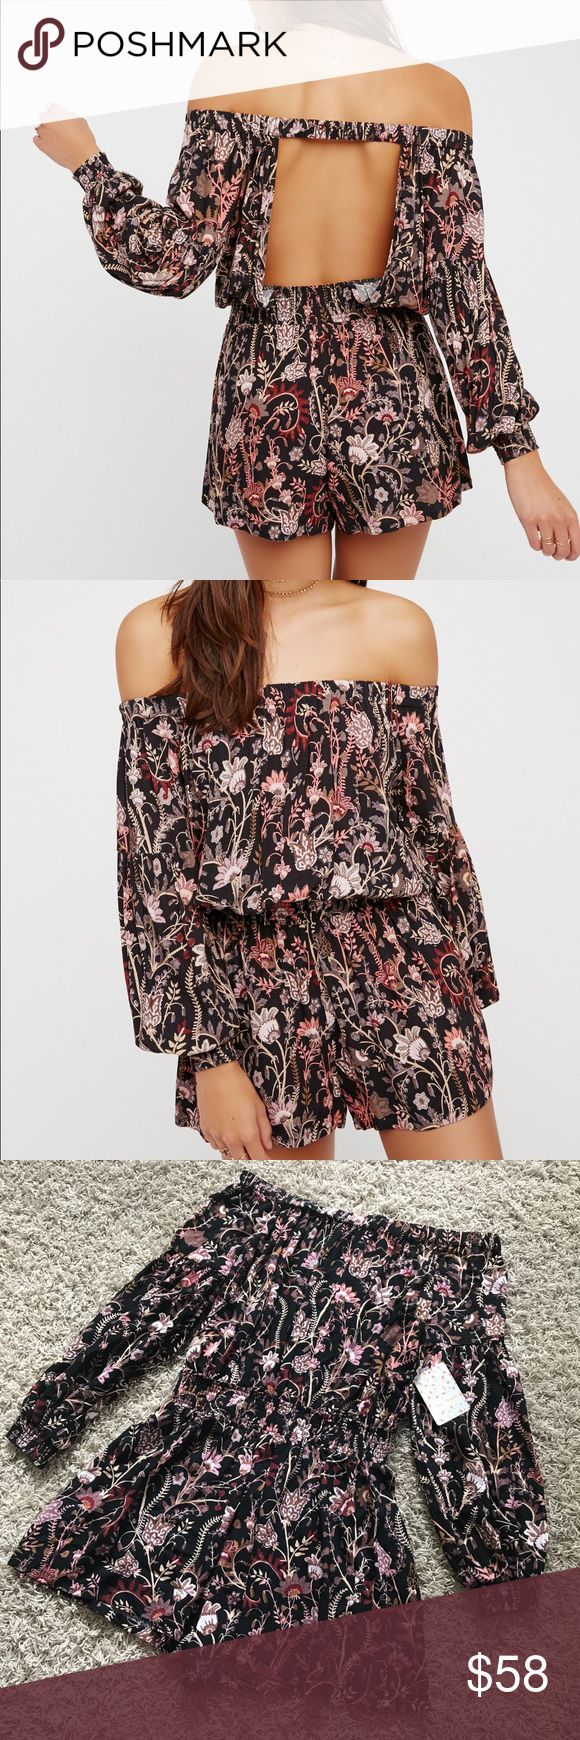 New Free People Pretty and Free Romper Free People Pretty and Free Off the Shoulder Romper in Black •New with tags •Size M •Retails for $98  Check out my other listings- Nike, adidas, Michael Kors, Kate Spade, Miss Me, Coach, Wildfox, Victoria's Secret, PINK, Under Armour, True Religion, Ugg Australia, Free People and more! Free People Pants Jumpsuits & Rompers